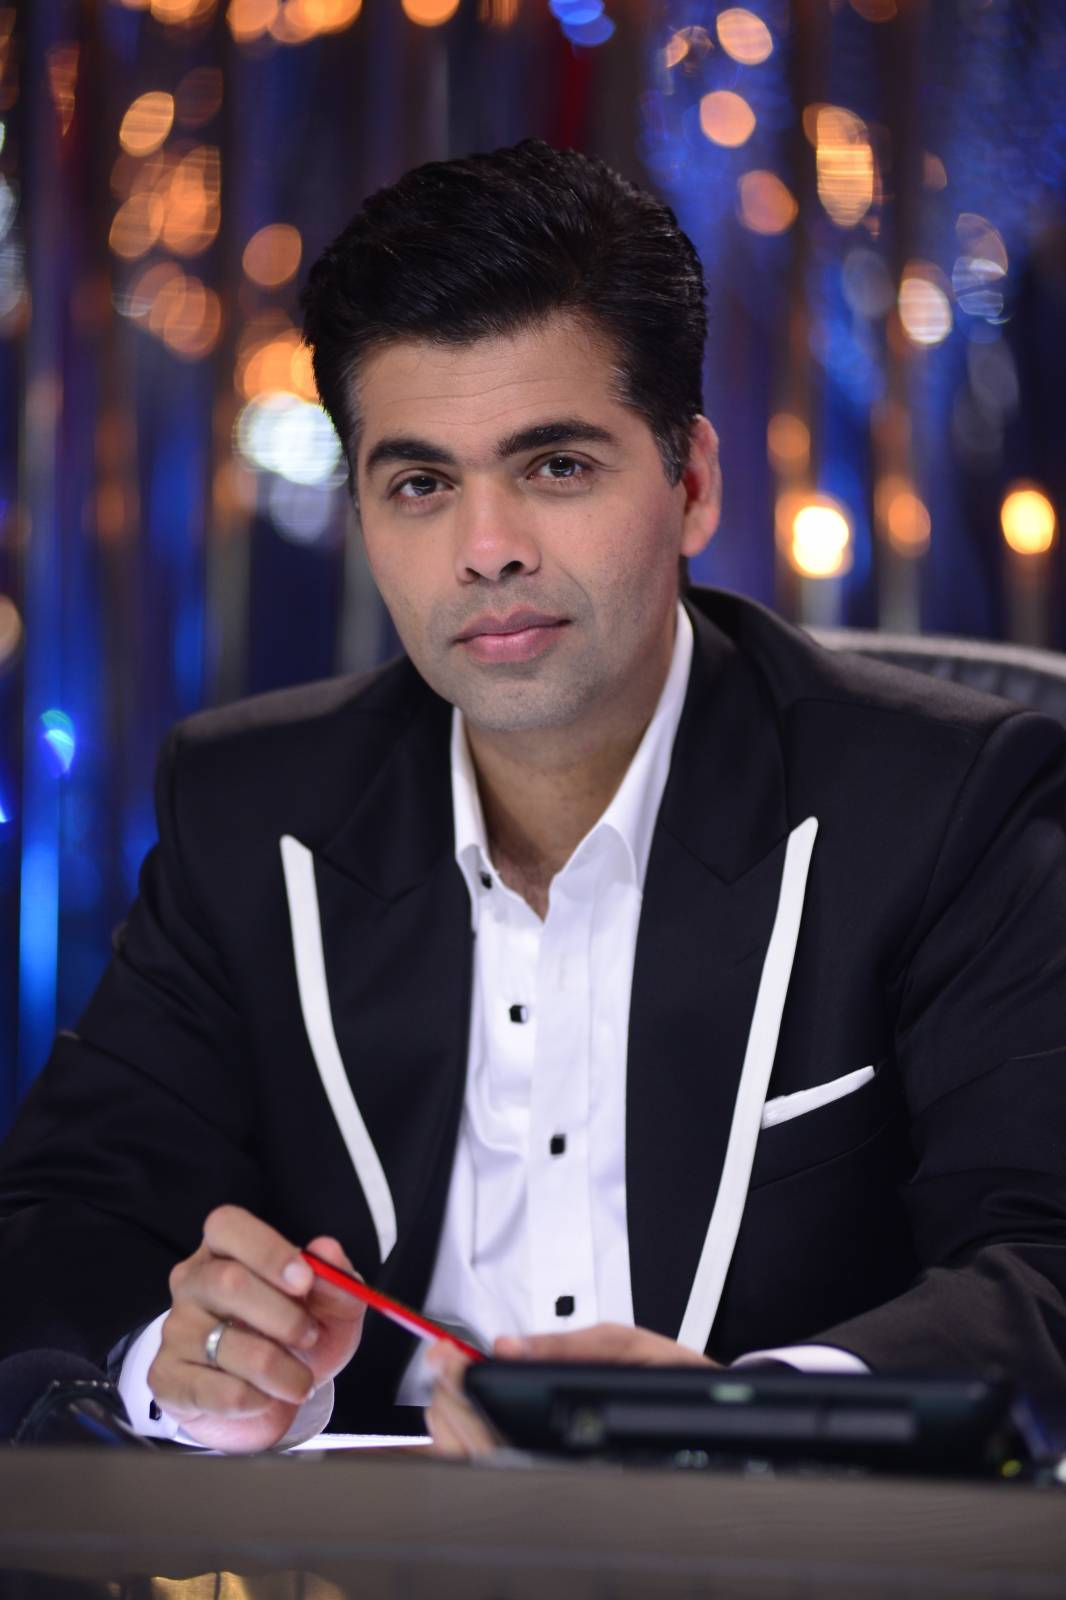 karan johar net worth 2016karan johar films, karan johar wife, karan johar twitter, karan johar mp3, karan johar vk, karan johar book, karan johar wiki, karan johar movies, karan johar show, karan johar father, karan johar ranveer singh, karan johar tv shows, karan johar kimdir, karan johar book pdf, karan johar katrina kaif, karan johar net worth 2016, karan johar wedding, karan johar amazon, karan johar brother, karan johar bio